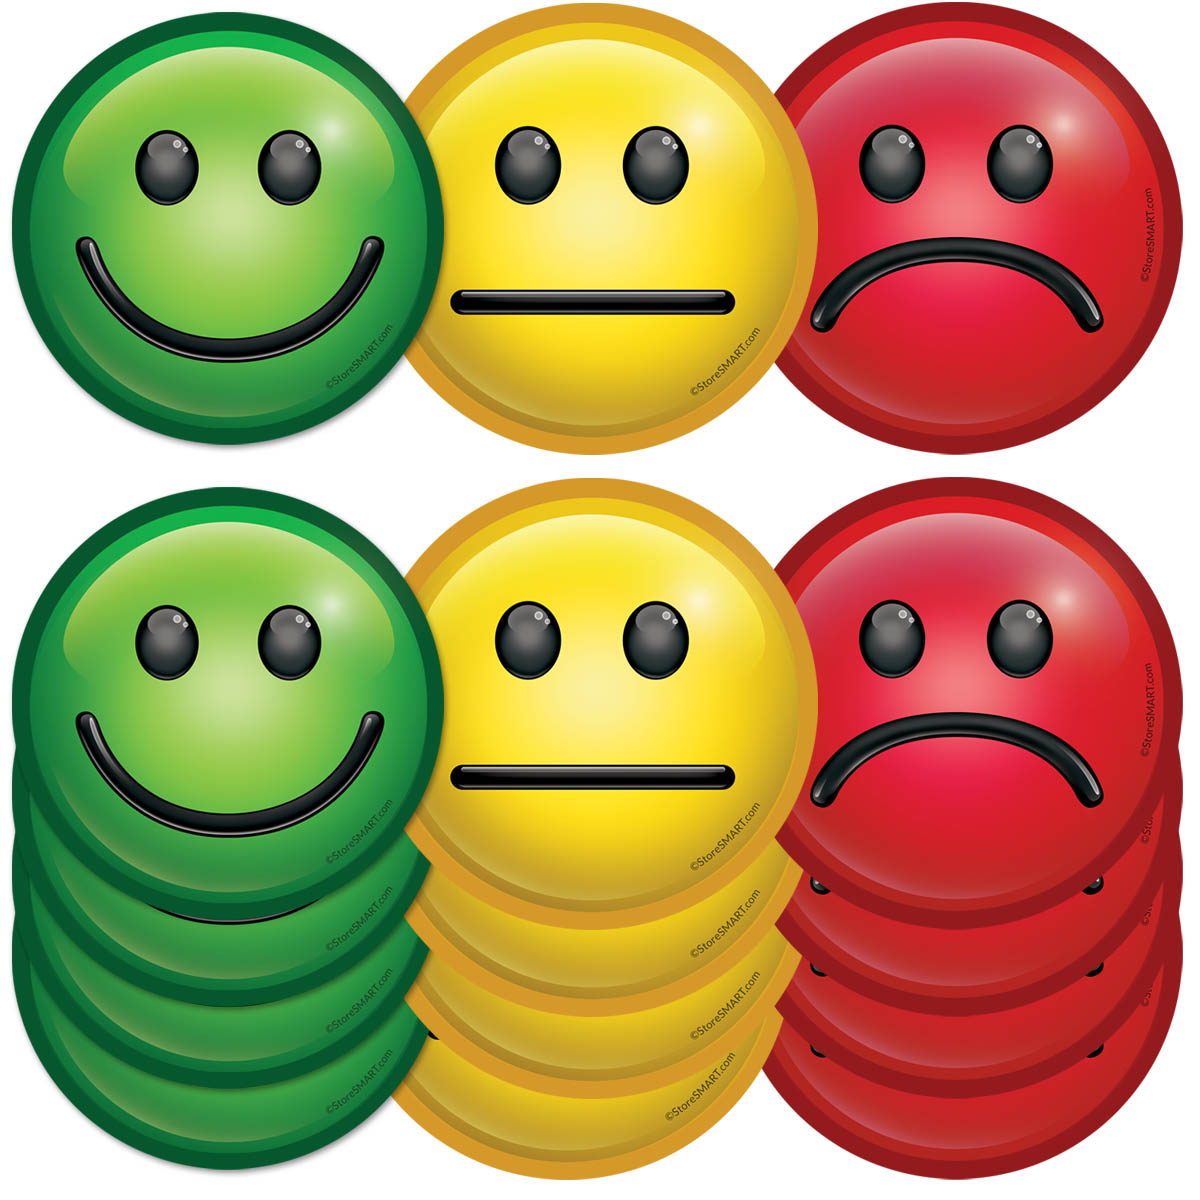 StoreSMART 3 Mood Magnets for Status Visualization FACE3-/_-50 50-Pack